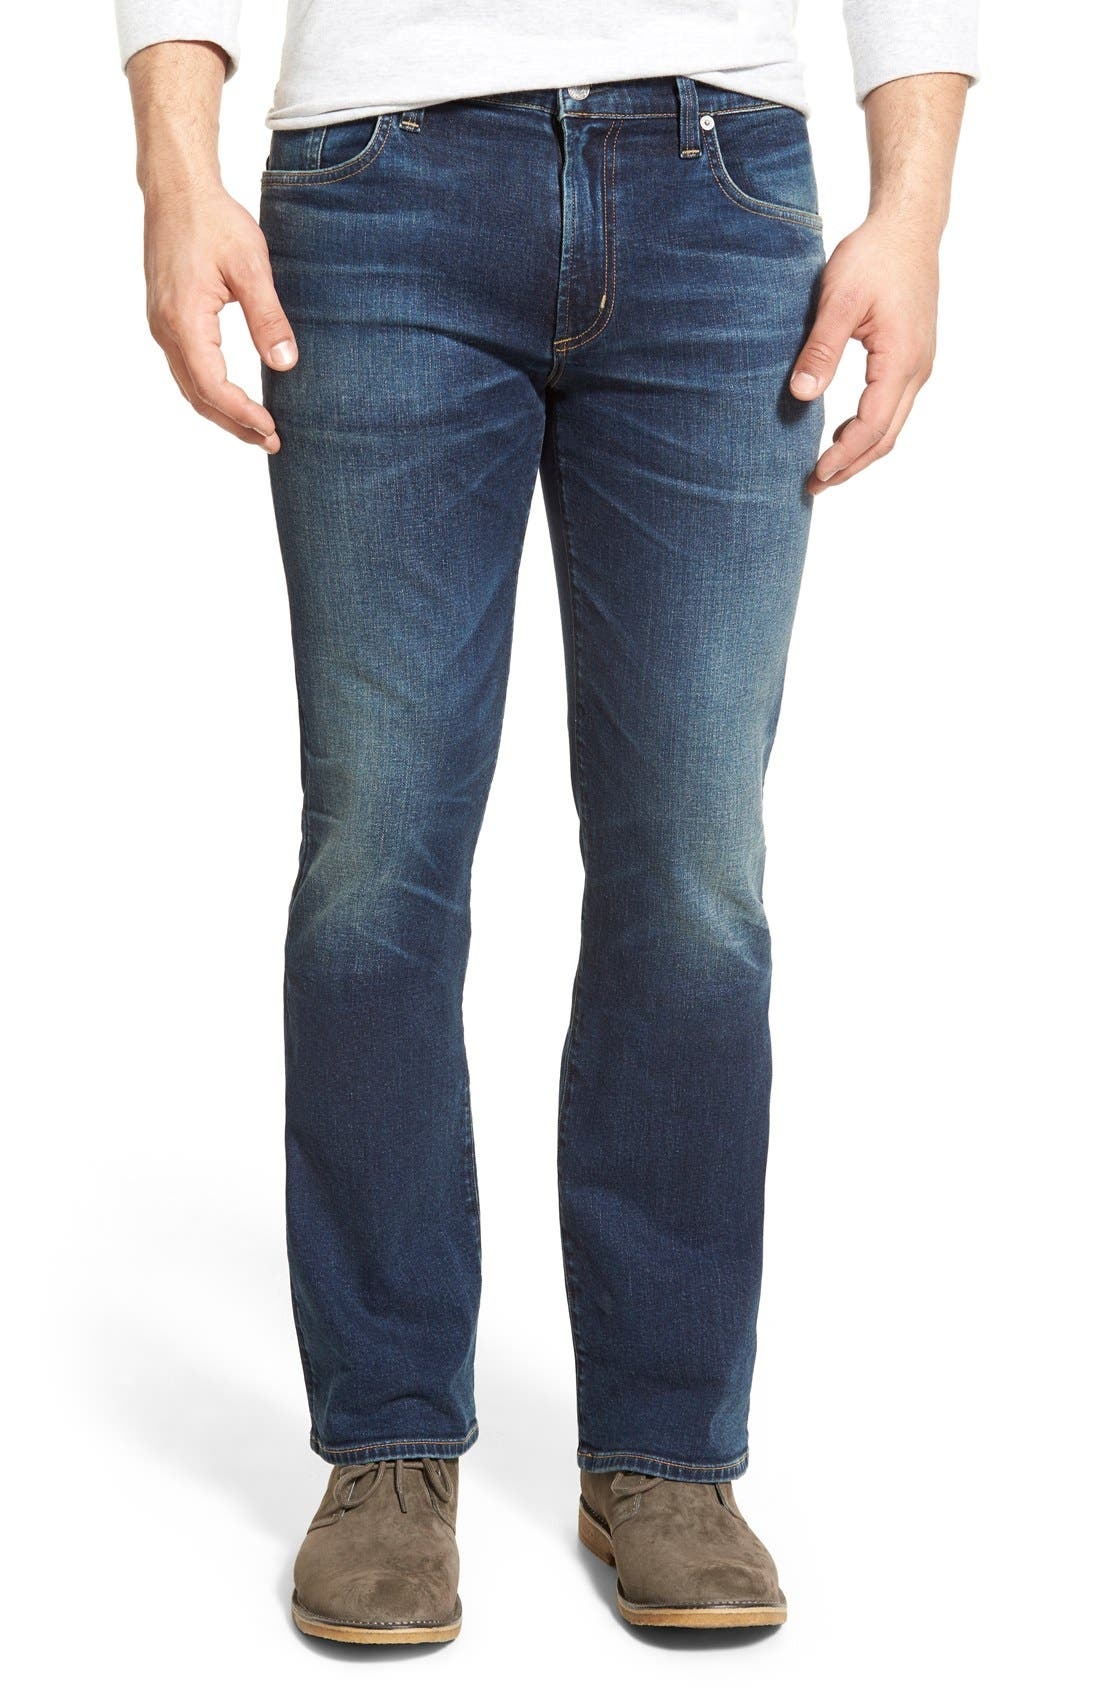 Alternate Image 1 Selected - Citizens of Humanity Bootcut Jeans (Brigade)